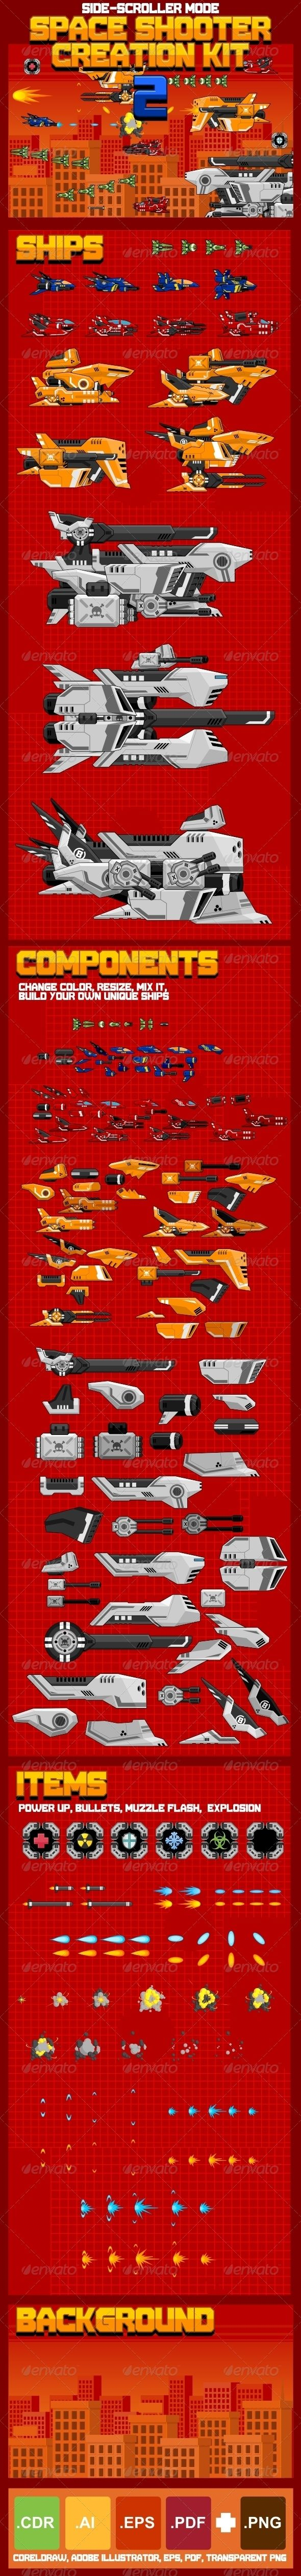 Space Shooter Creation Kit 2 by Zuhria Alfitra, via Behance